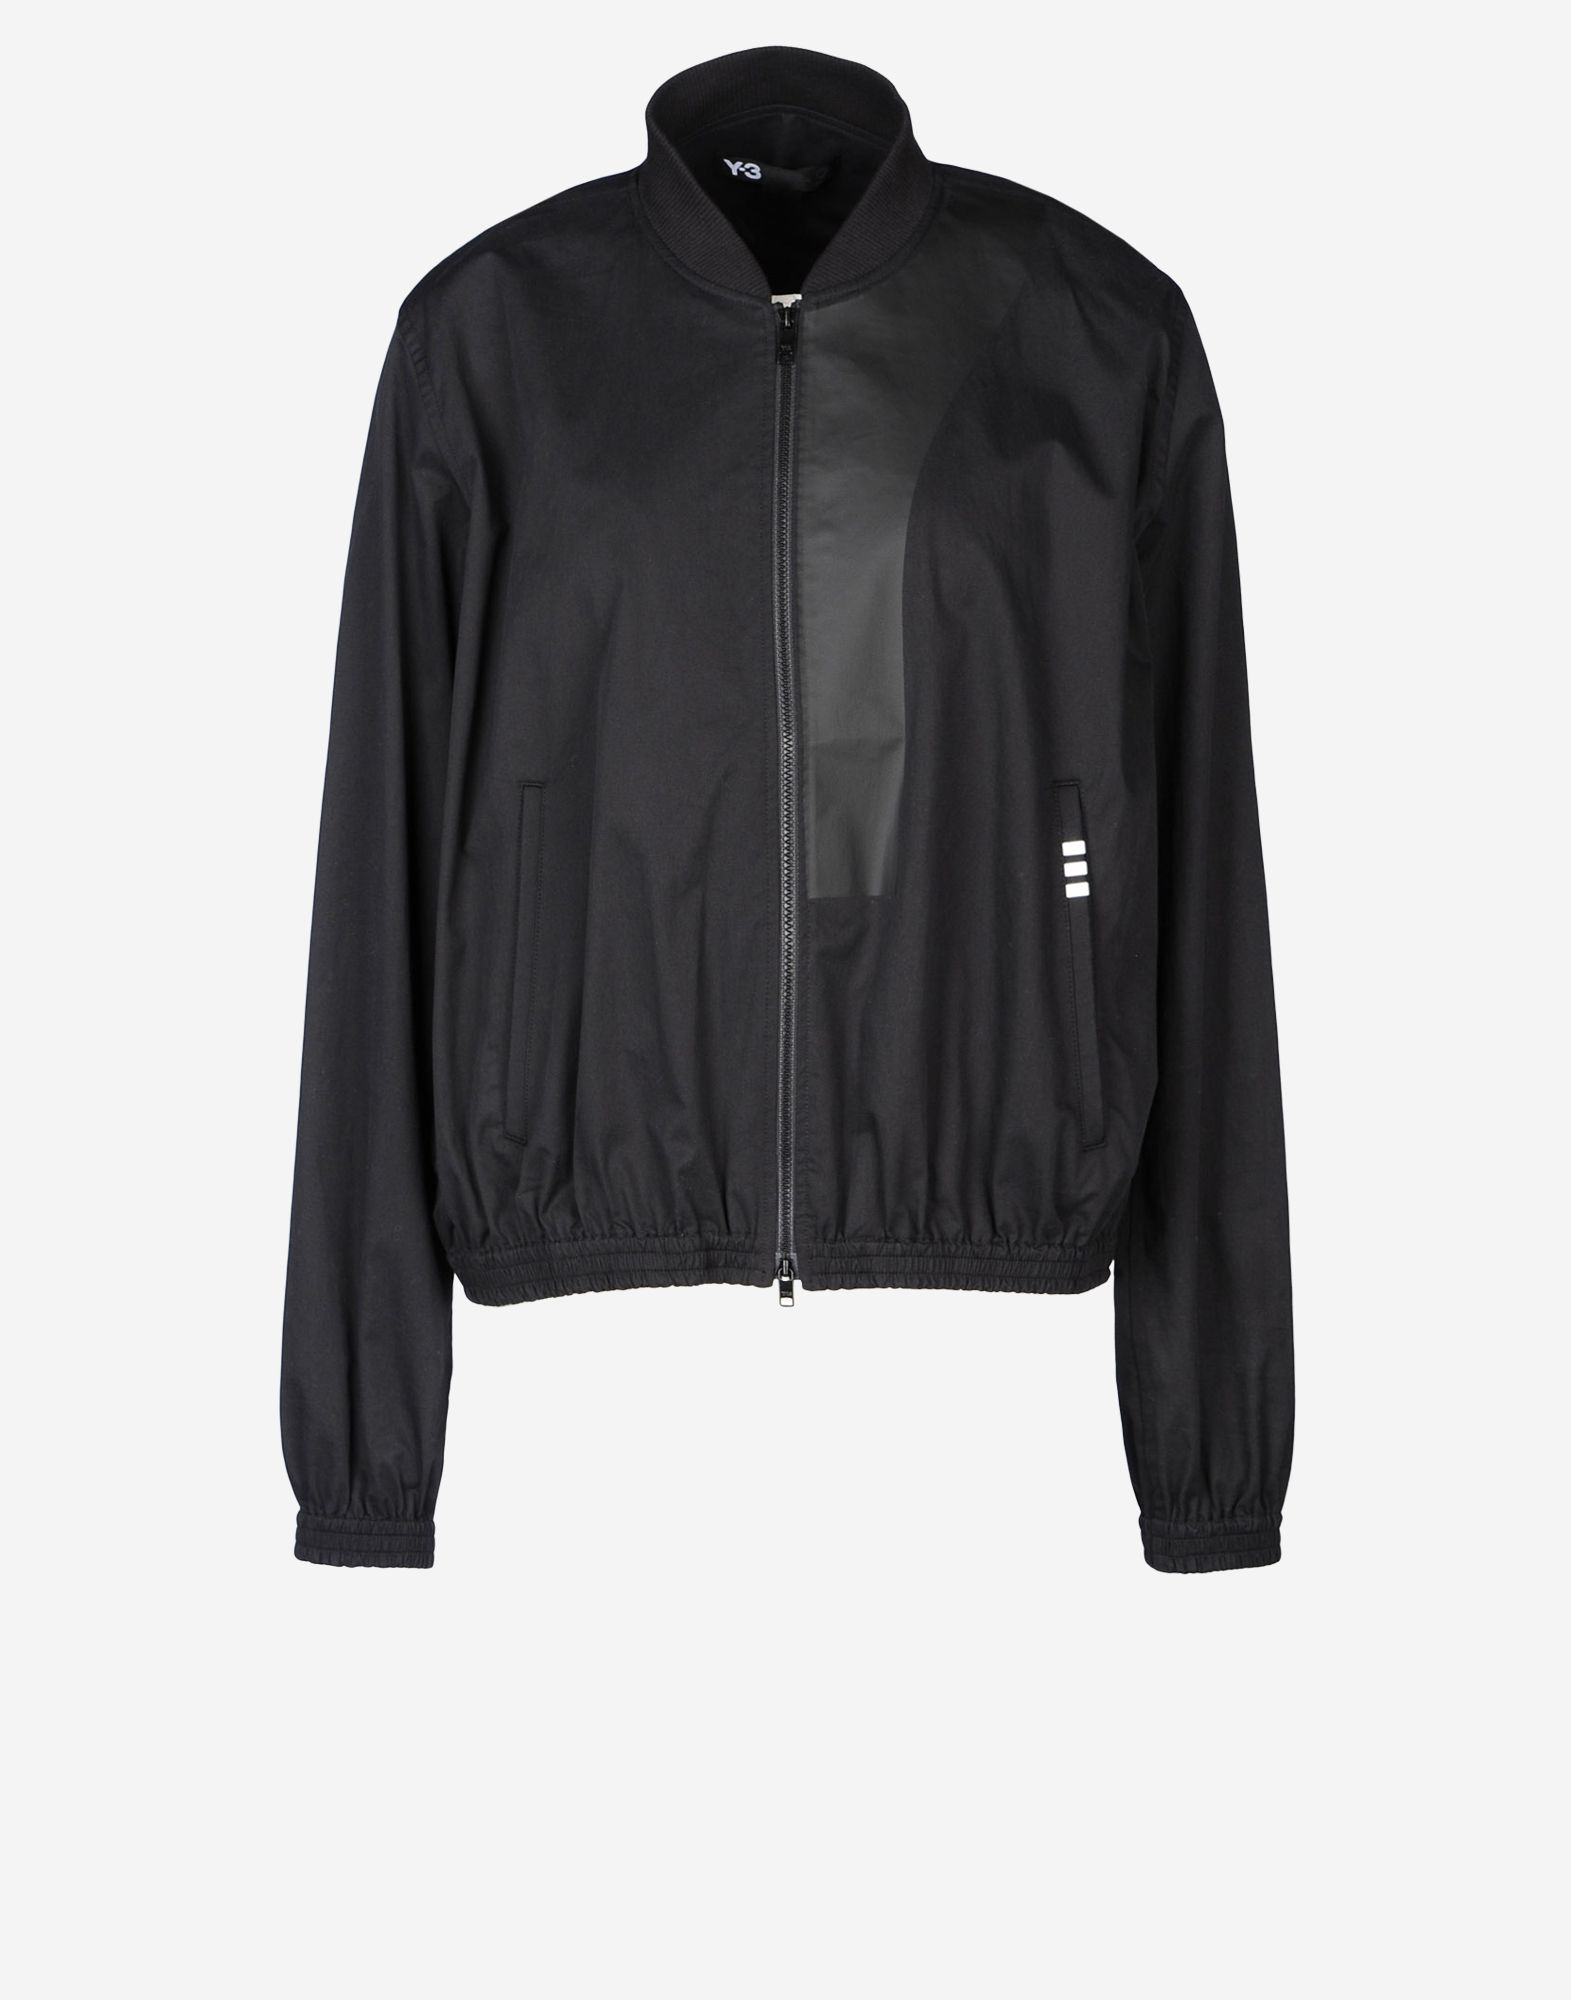 y 3 light bomber jacket for women adidas y 3 official store